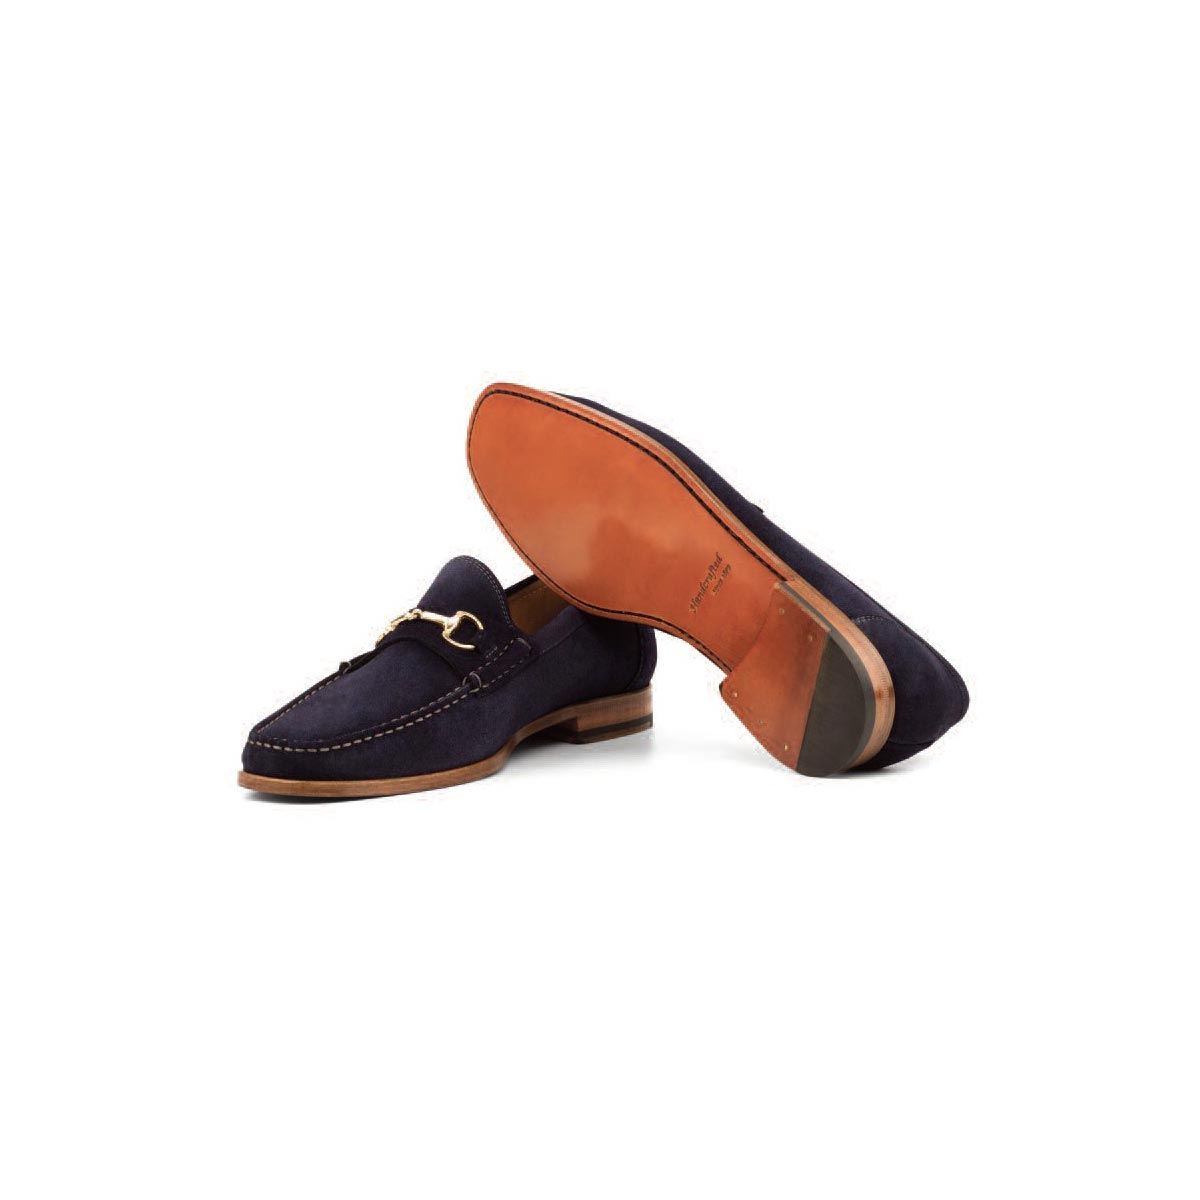 Navy Suede - Moccasin